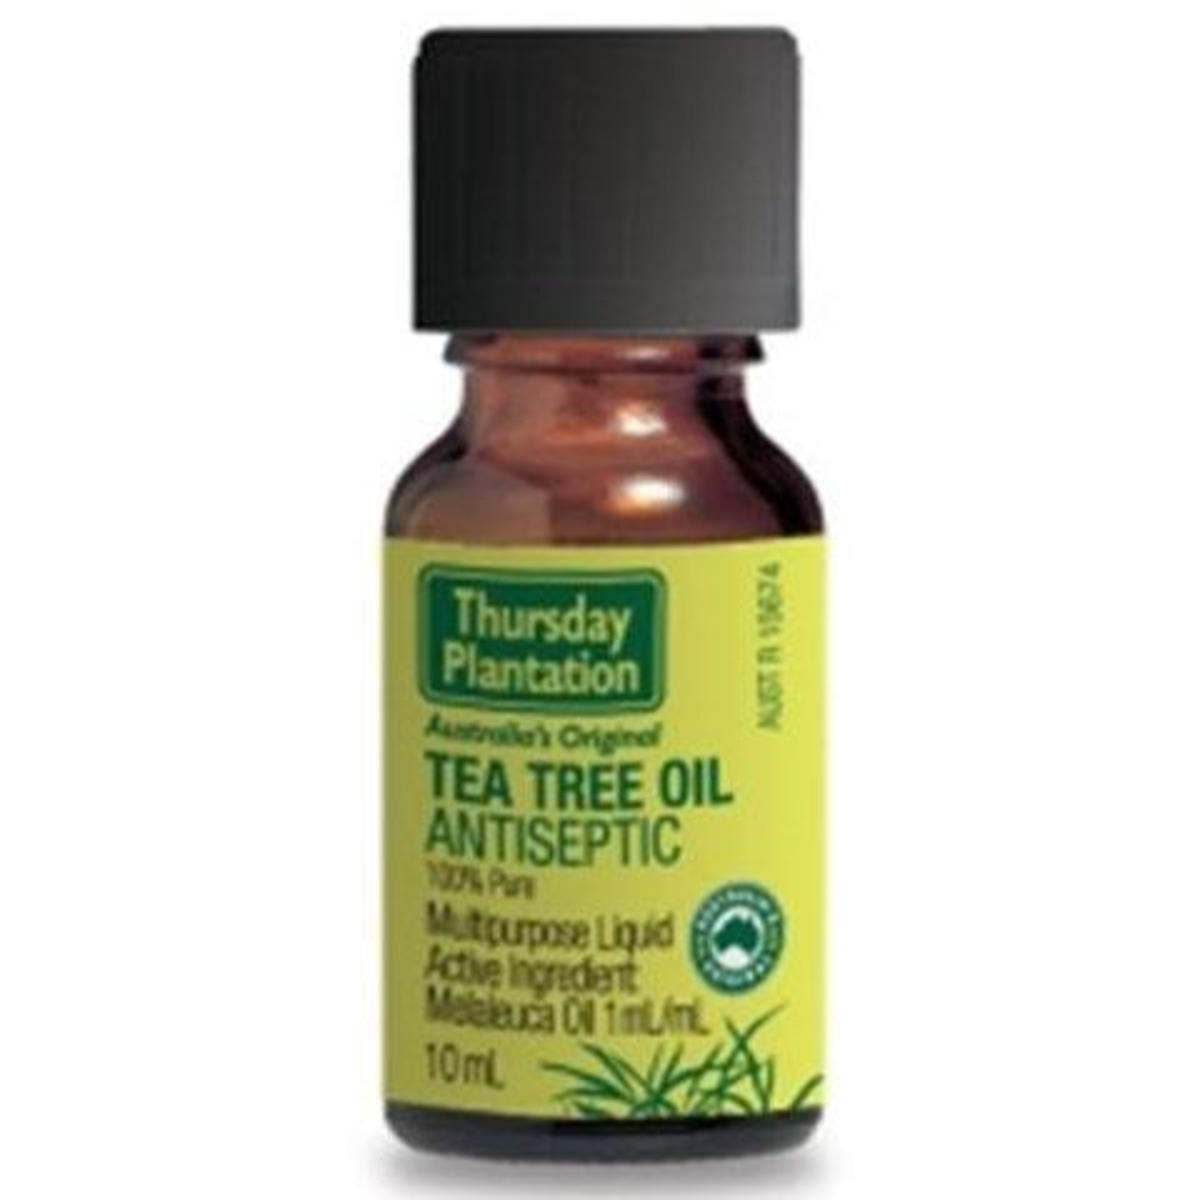 Tea tree oil is a great treatment for male yeast infection.